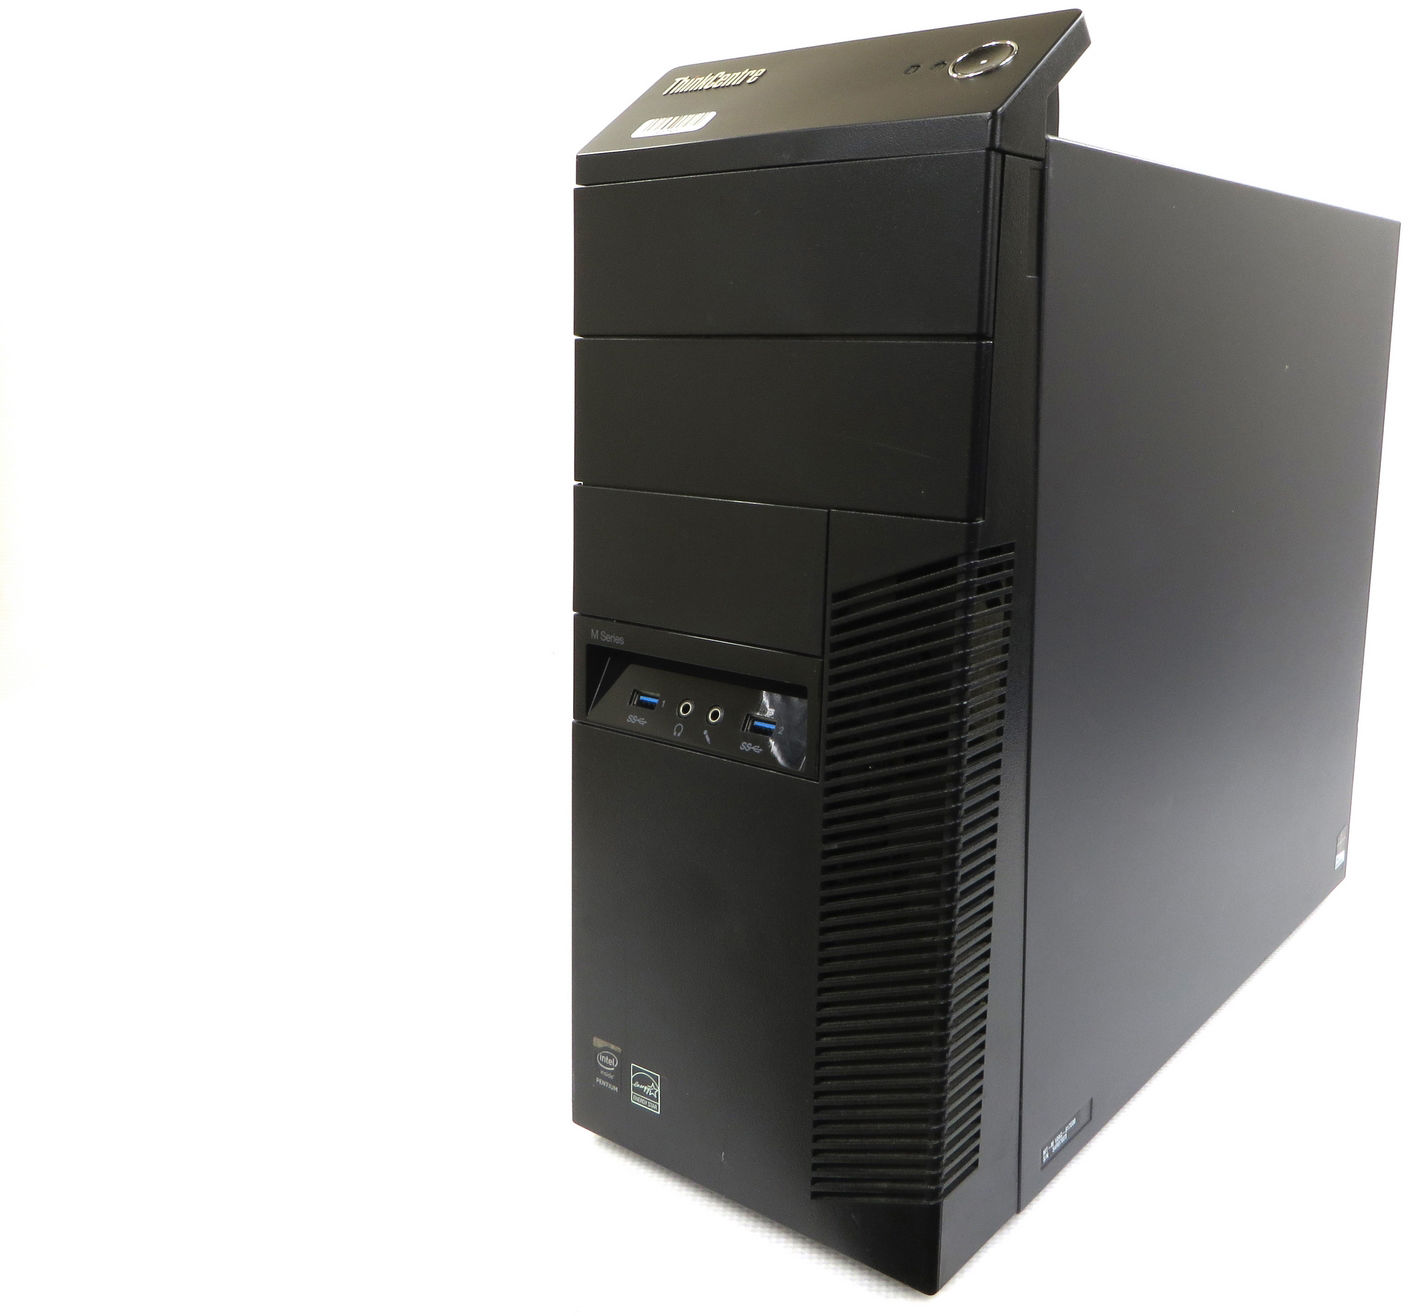 Komputer Lenovo ThinkCentre M83p MT Intel i7-4790 4x4.00GHz 8GB 500GB DVD Windows 7 Pro